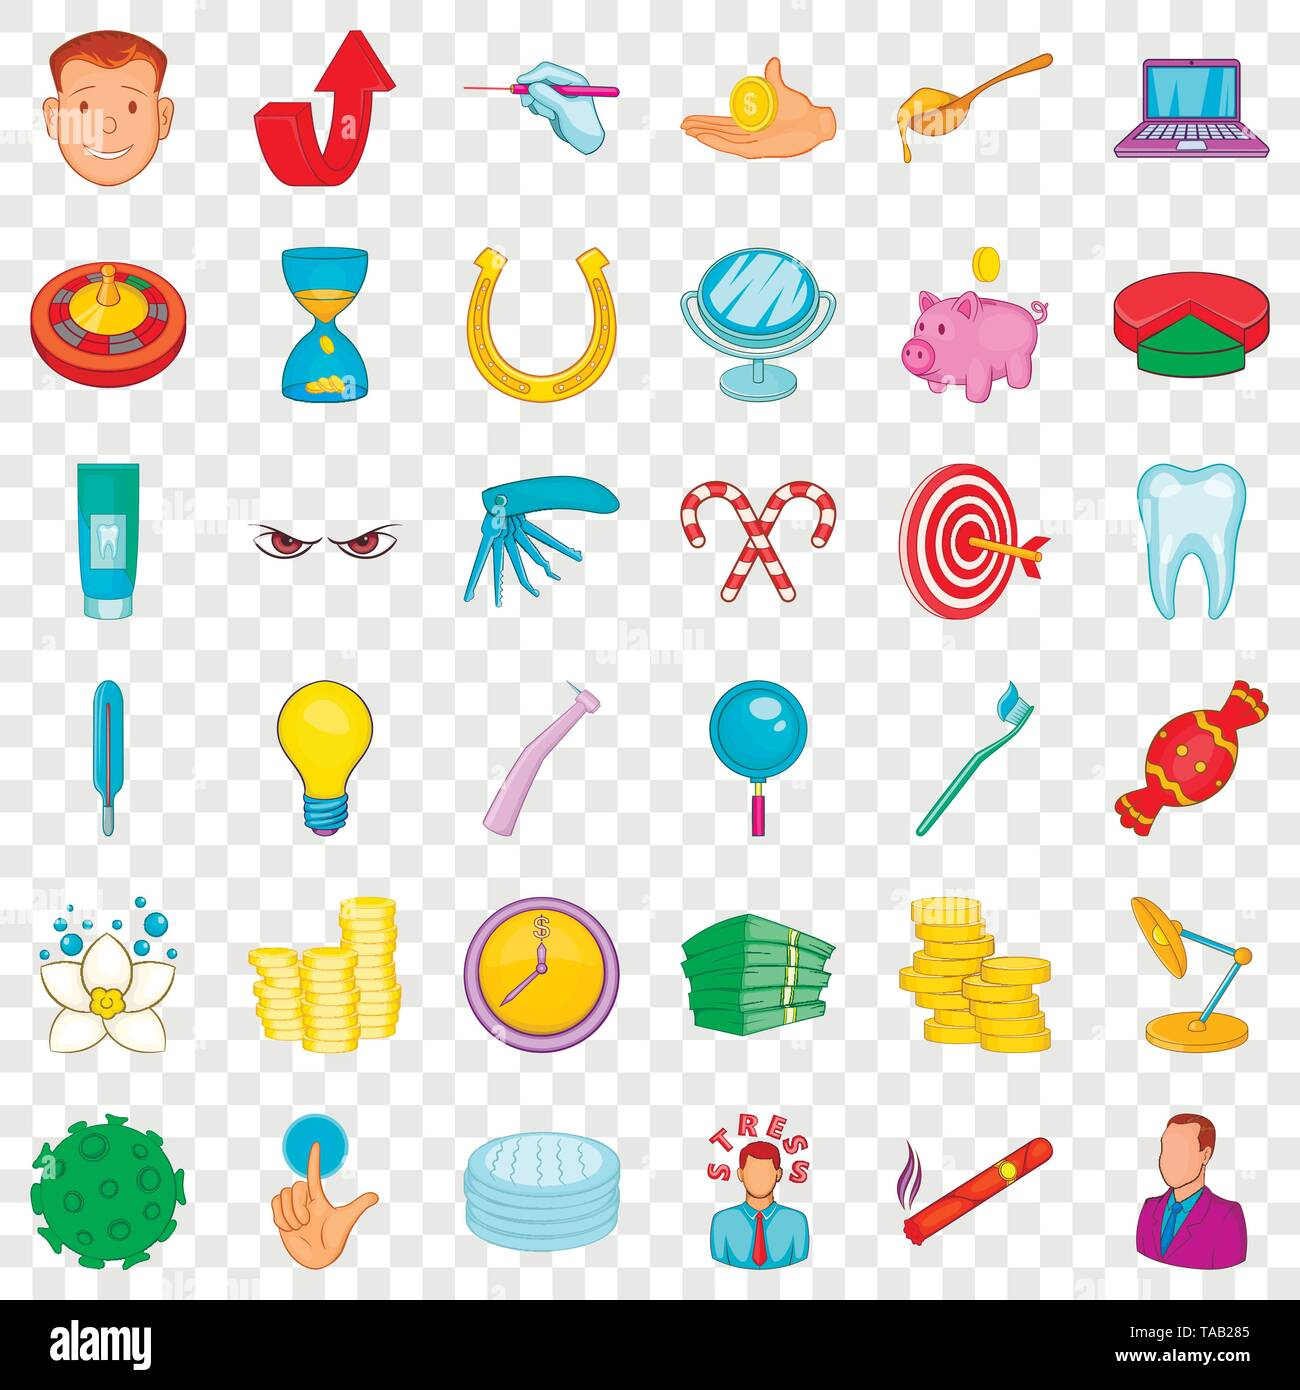 Toothpaste icons set, cartoon style - Stock Image